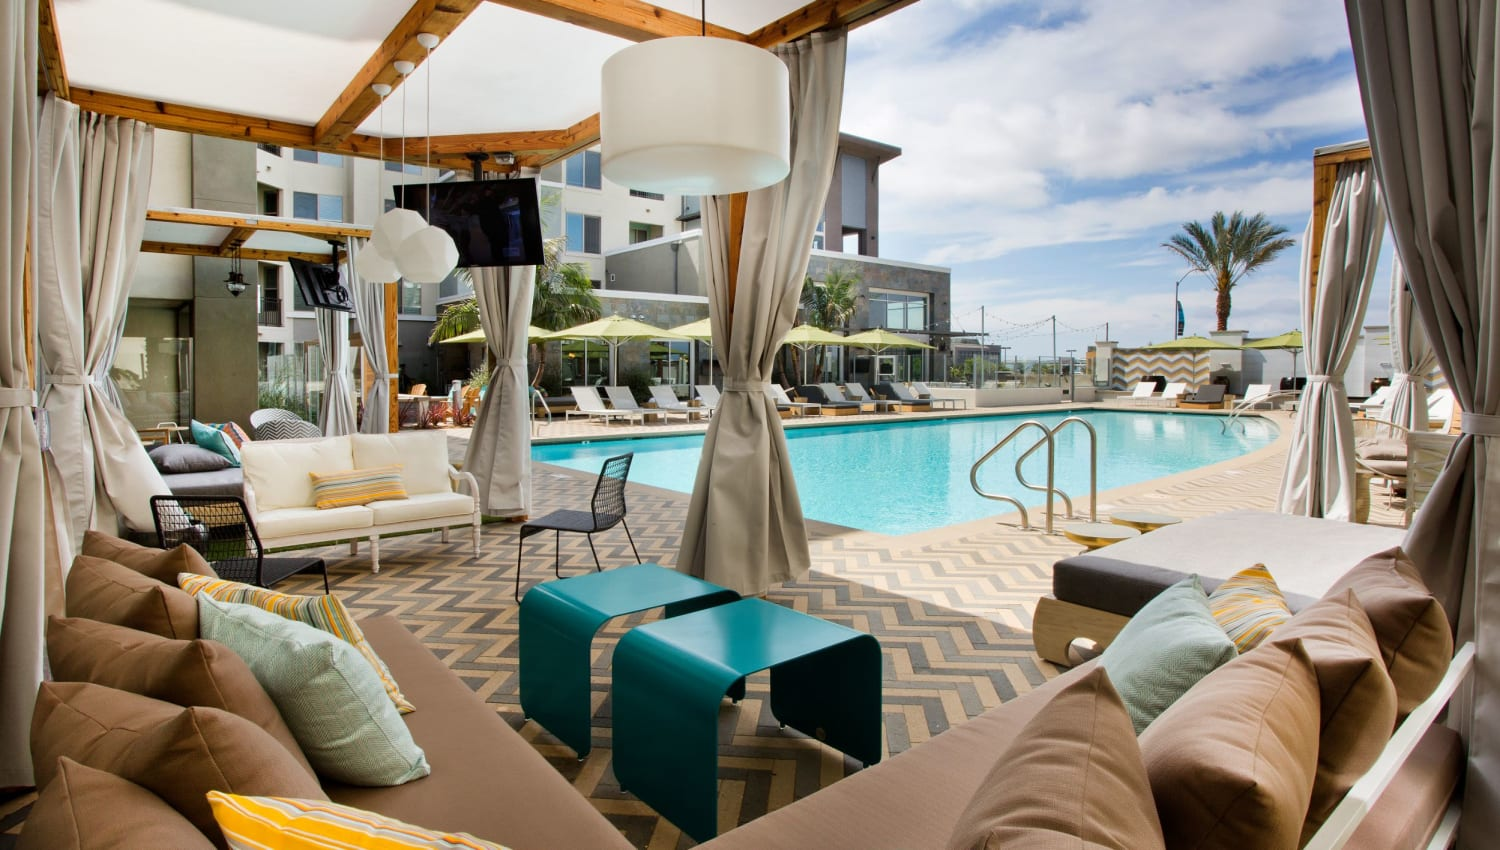 Private cabanas with TV's at Olympus Corsair in San Diego, California